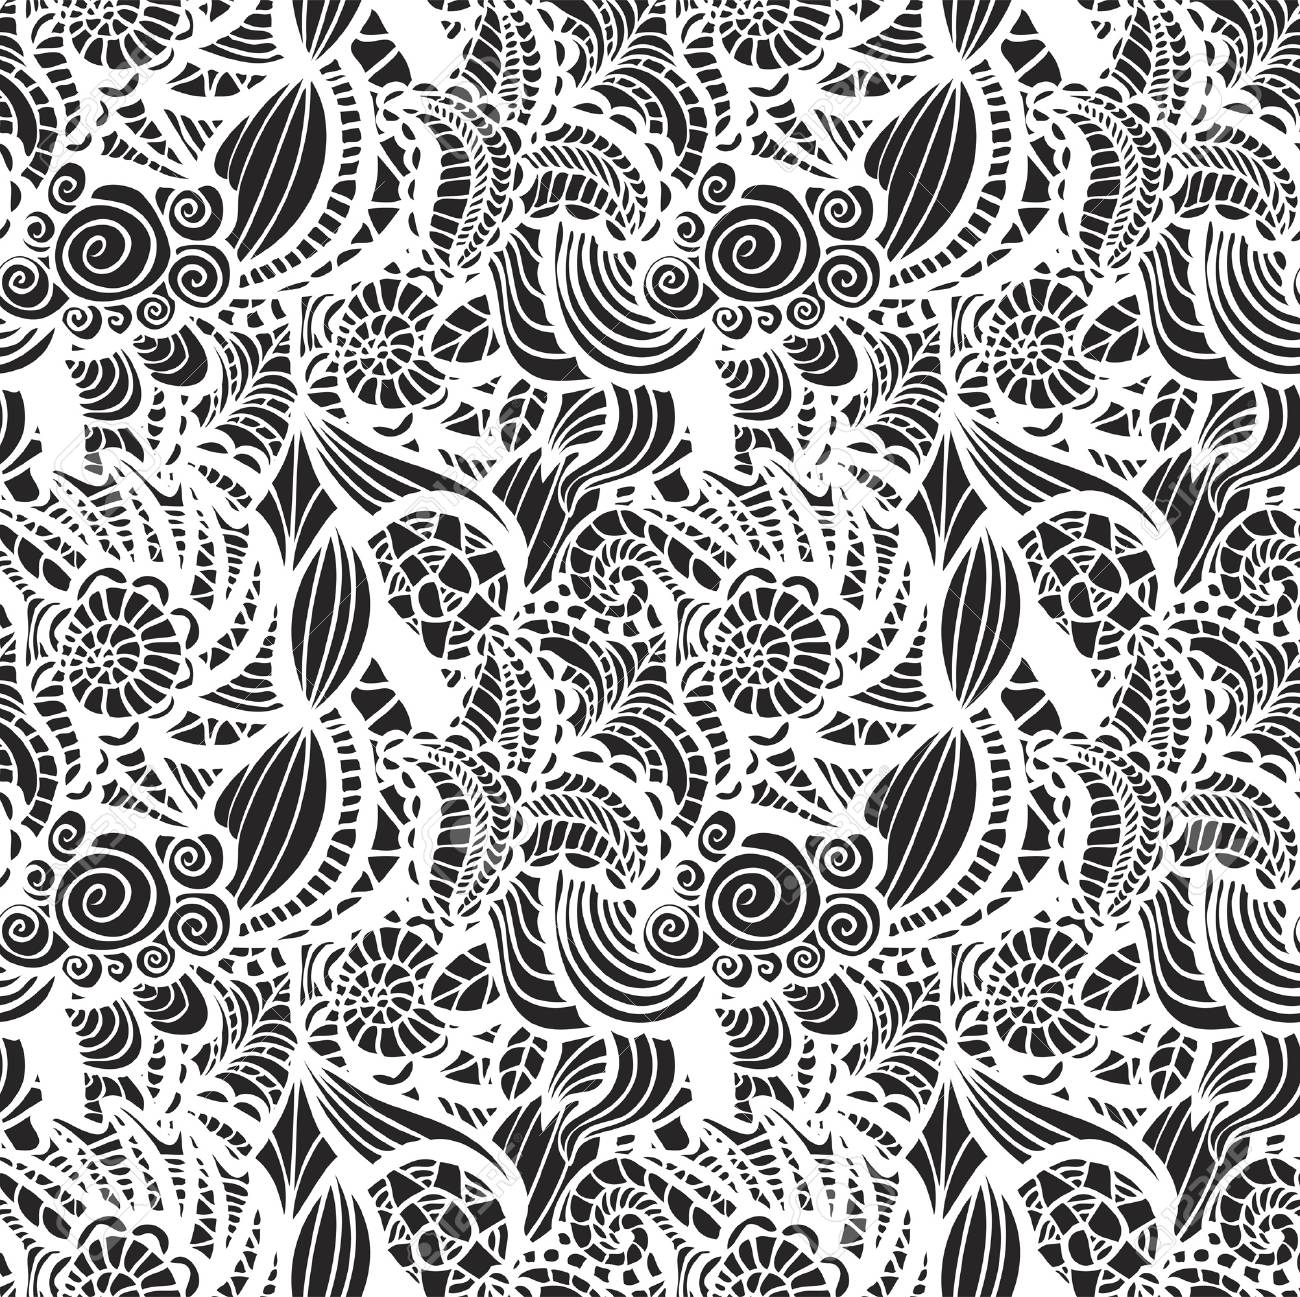 Hand-drawn seamless pattern may be used as background Stock Vector - 21604633